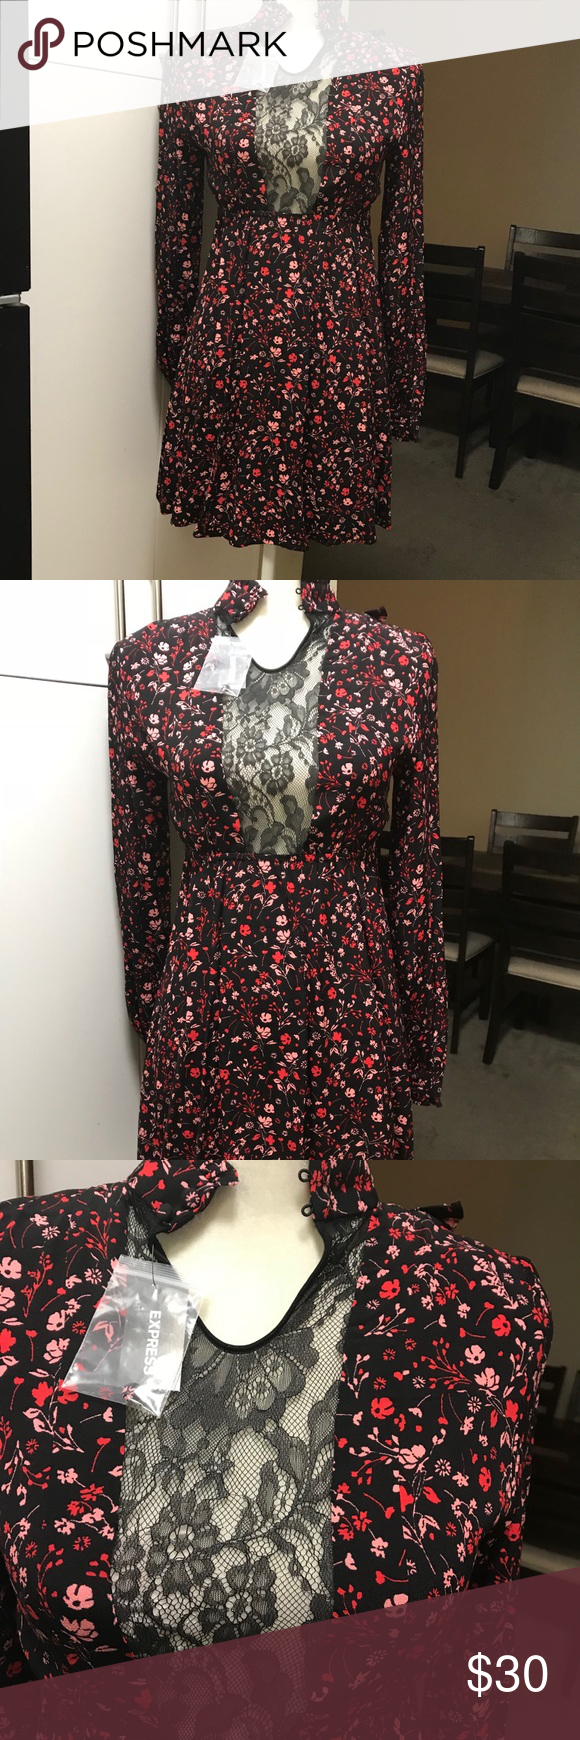 Dress With Long Sleeves Printed Floral Dress With Long Sleeves Material Crepe Color Black Base With Red And Clothes Design Express Dresses Long Sleeve Dress [ 1740 x 580 Pixel ]